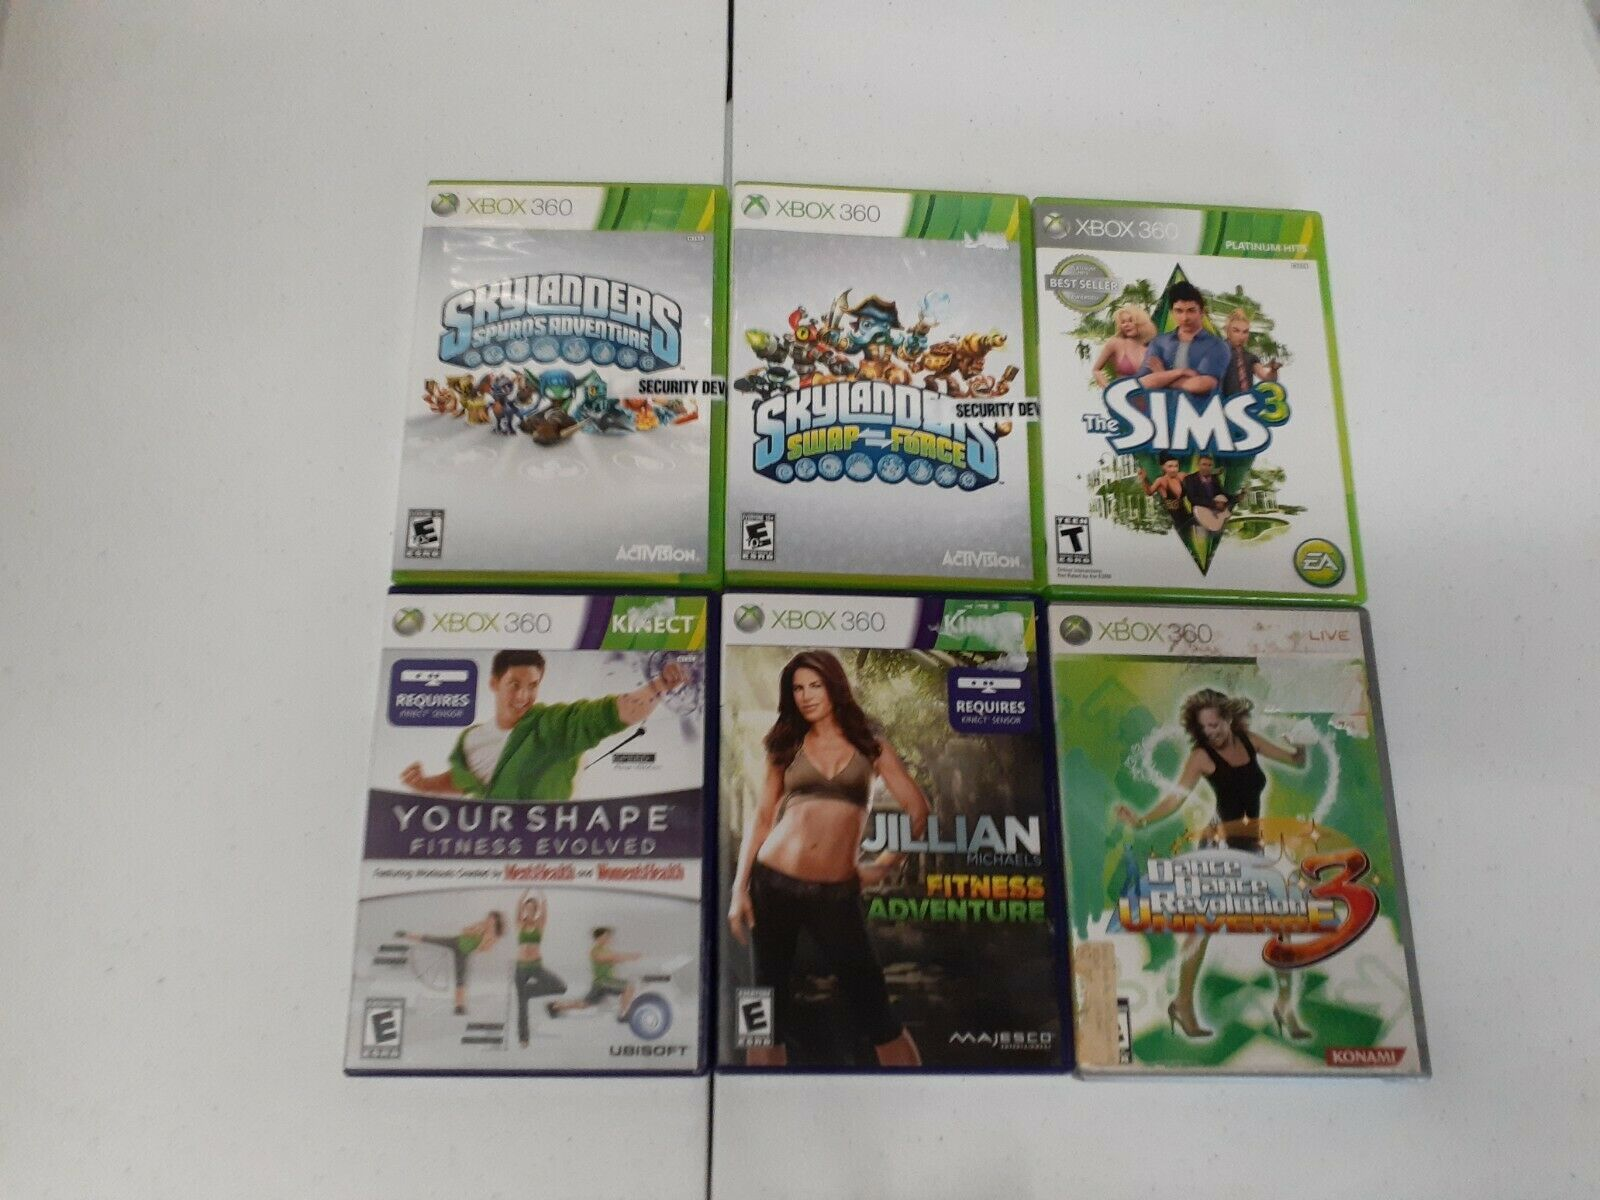 Primary image for LOT 6 XBOX 360 Skylanders Sims Dance 3 Your shape Jillian